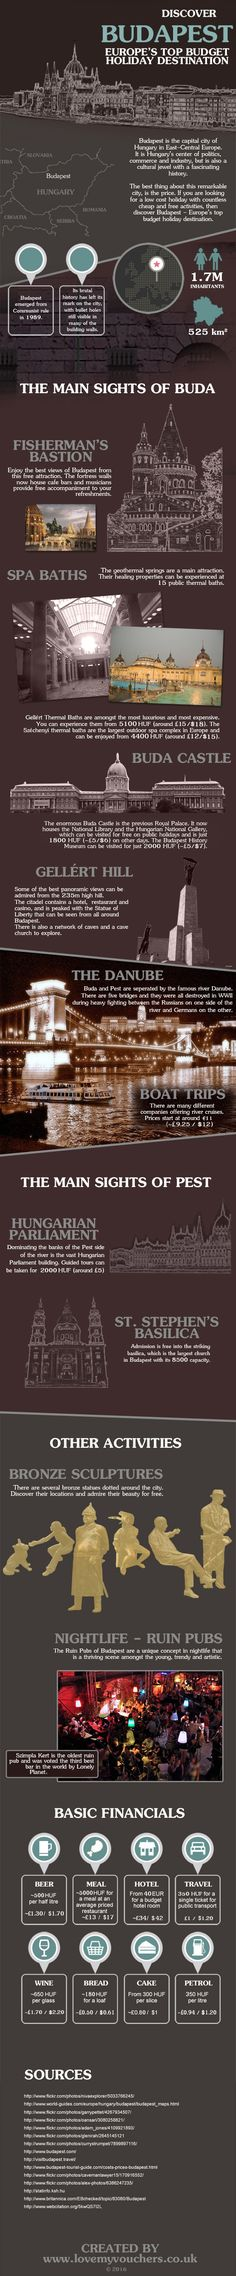 Planning a Trip to Budapest: My Return to Europe